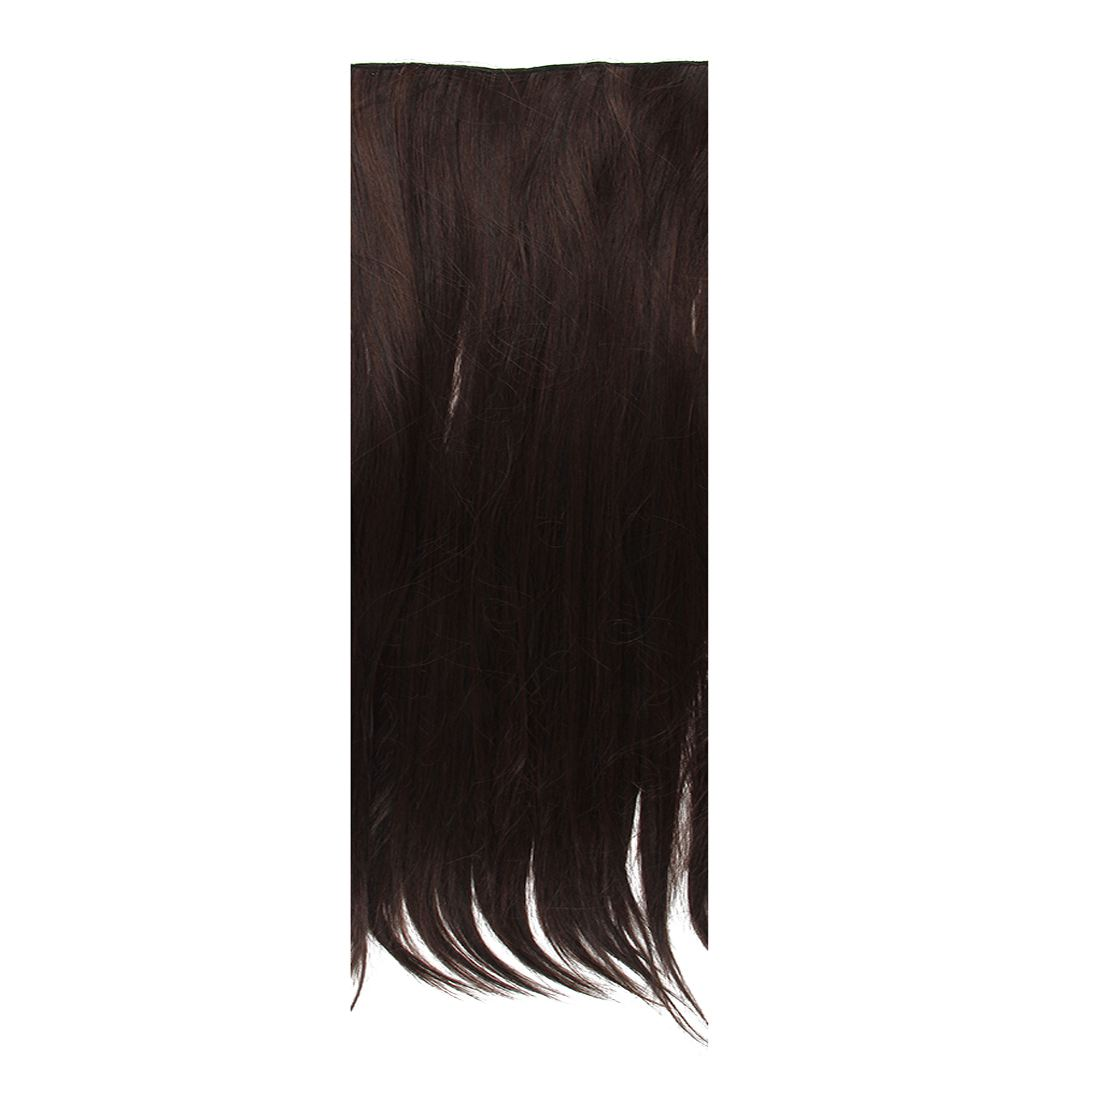 ... Clips in Hair Extensions Full Head Top B8a4 Dark Brown 55cm. About this  product. Picture 1 of 7  Picture 2 of 7 ... 3a953c5150